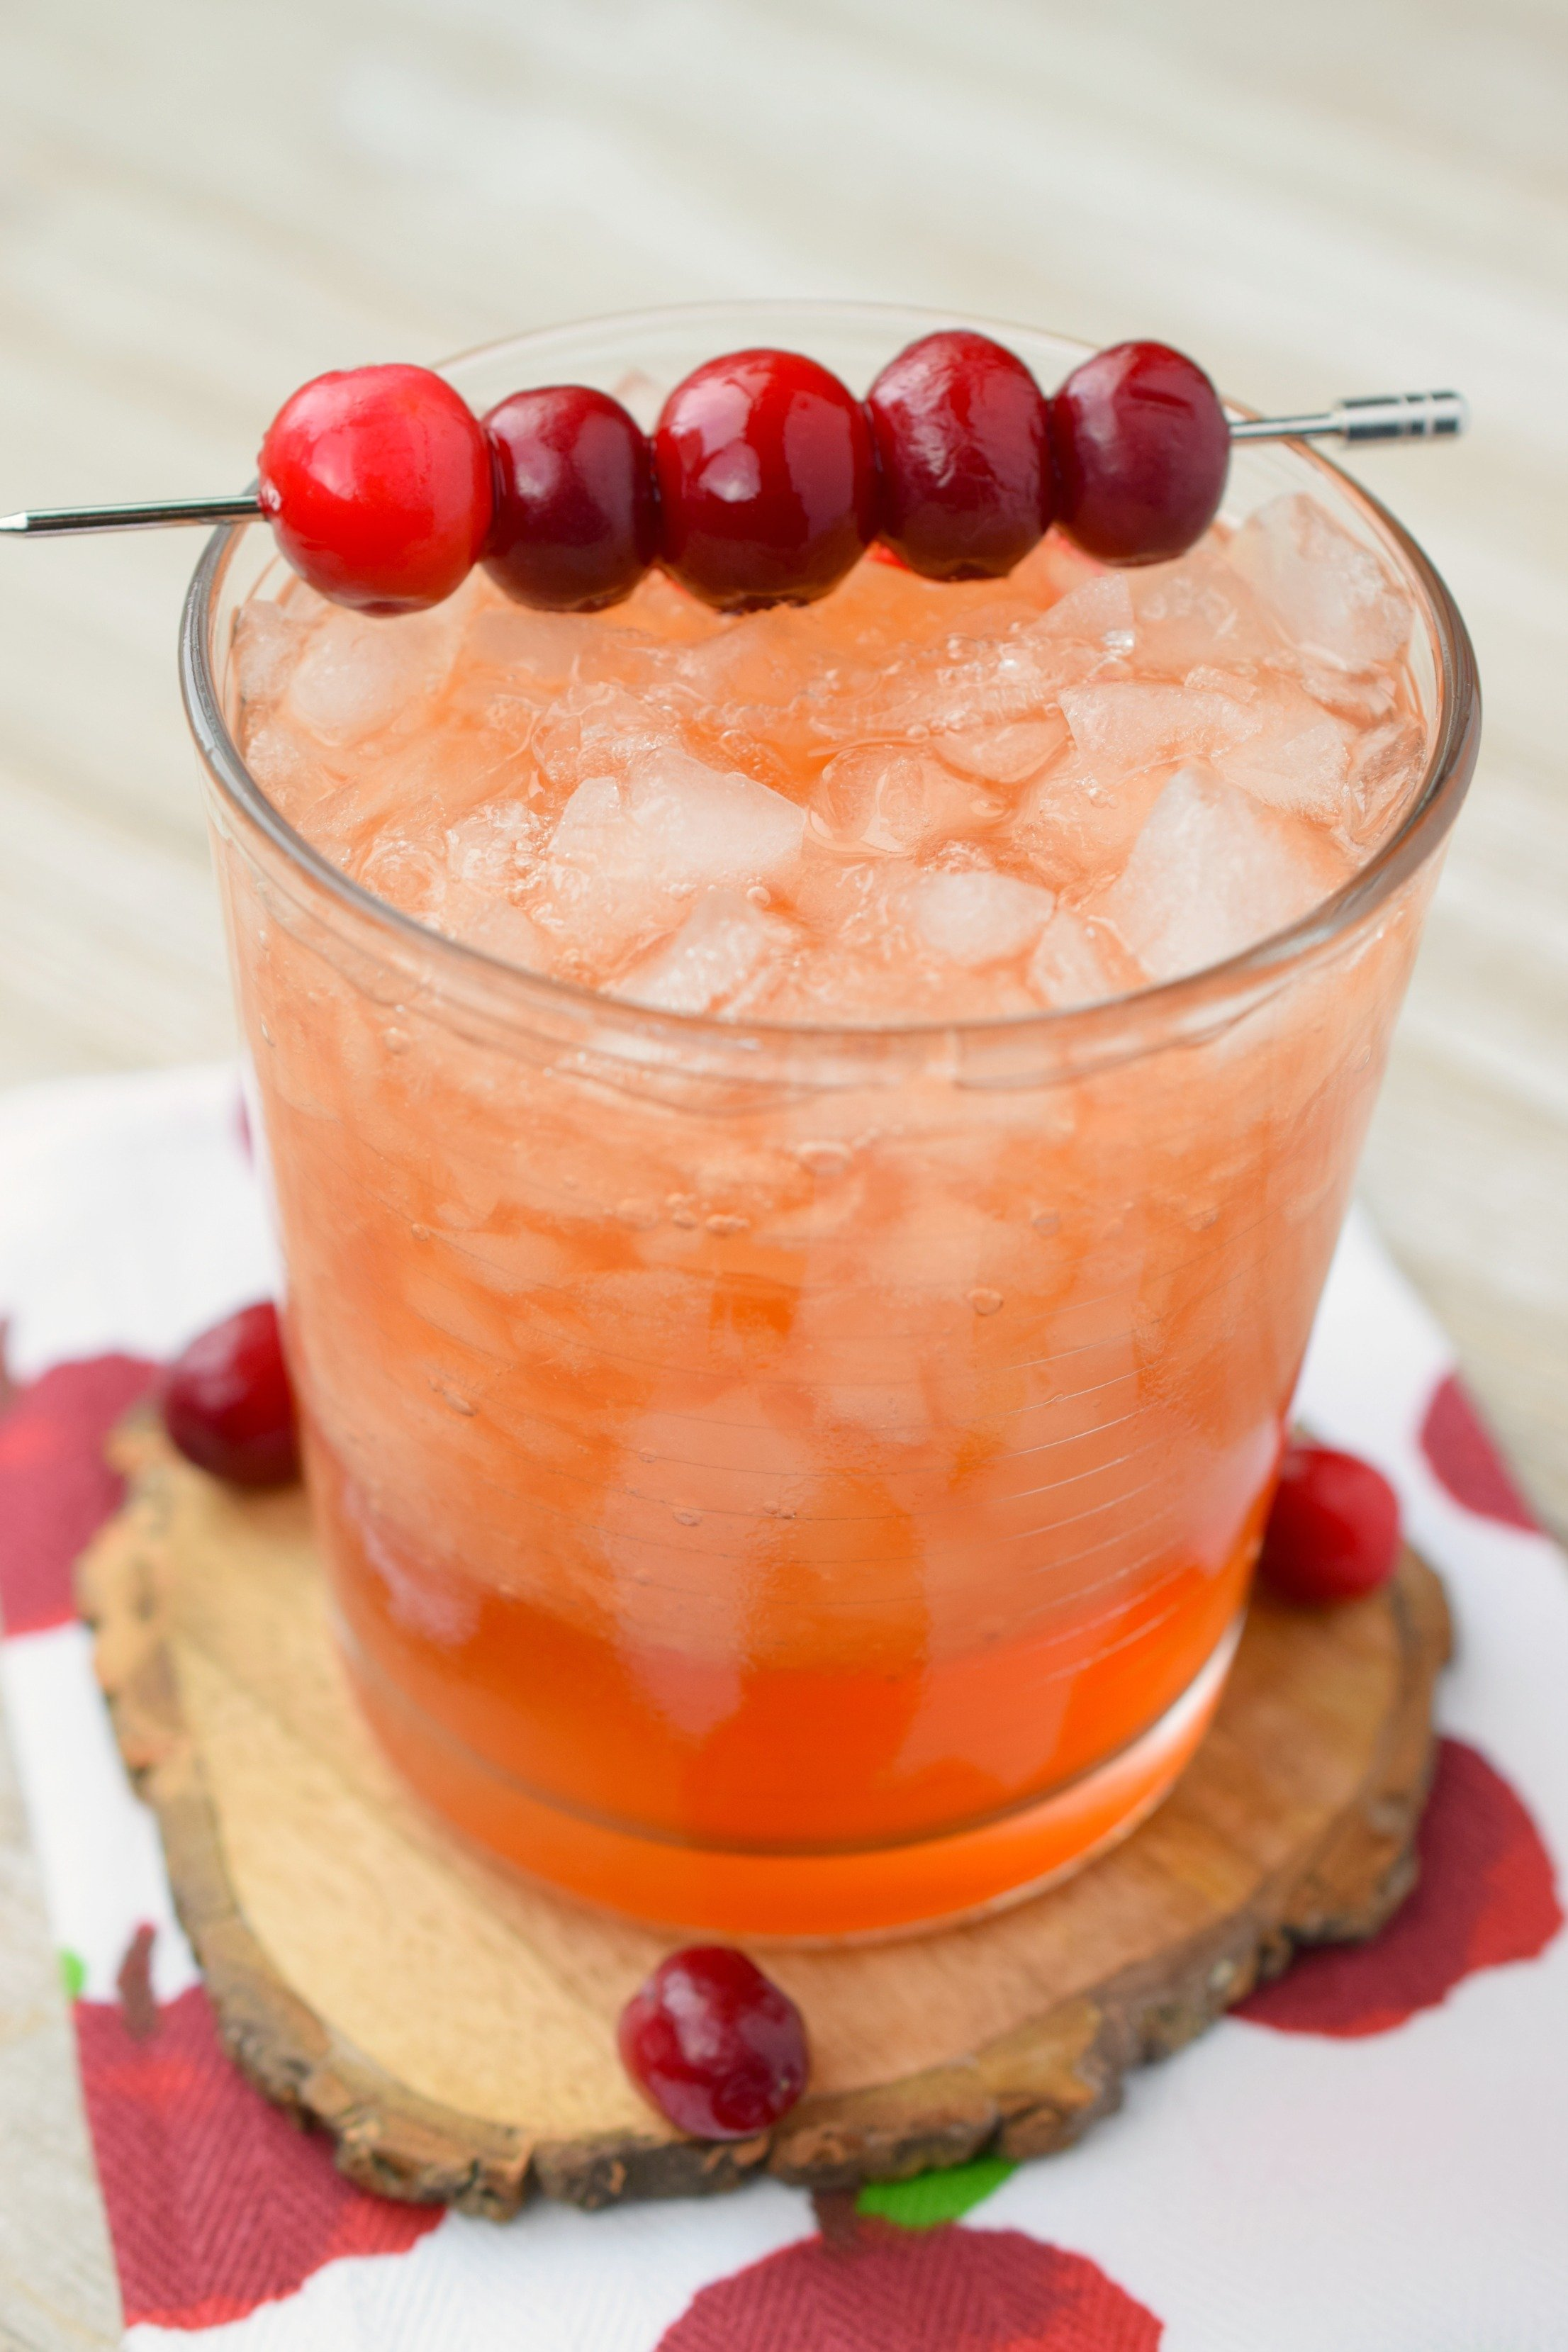 All the best flavor of fall come together in the Cranberry Whiskey Apple Cider Cocktail! Great for autumn parties, this easy to make drink is delicious.